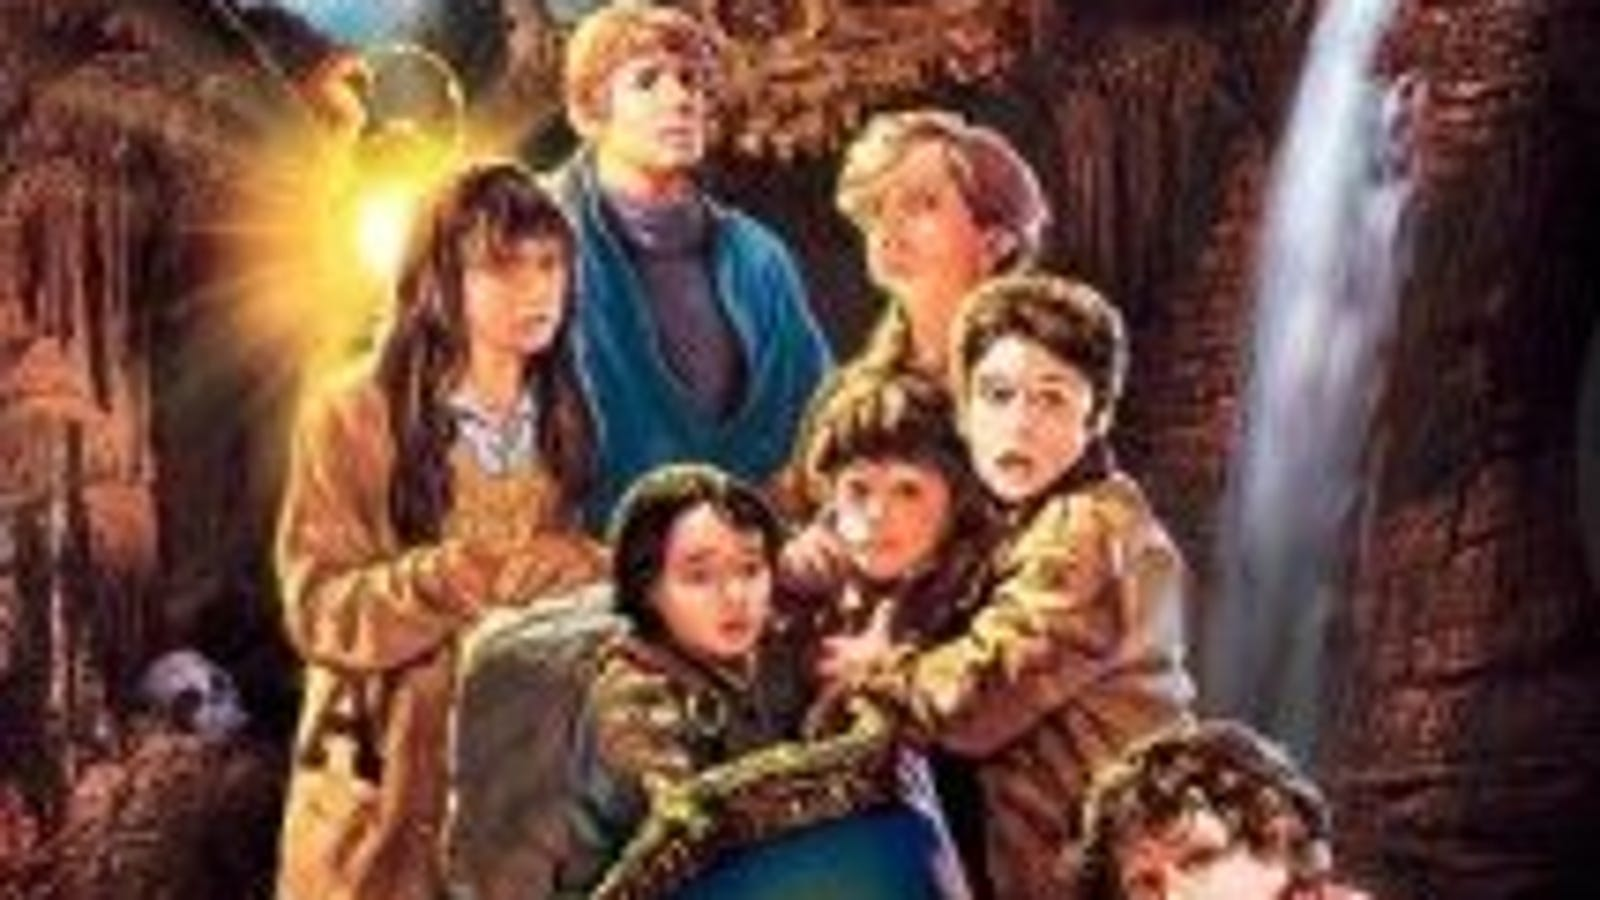 goonies movie review Retro review: the goonies  perhaps the only) retro review features the goonies,  everything that we loved about the movie holds up and it is still good family.